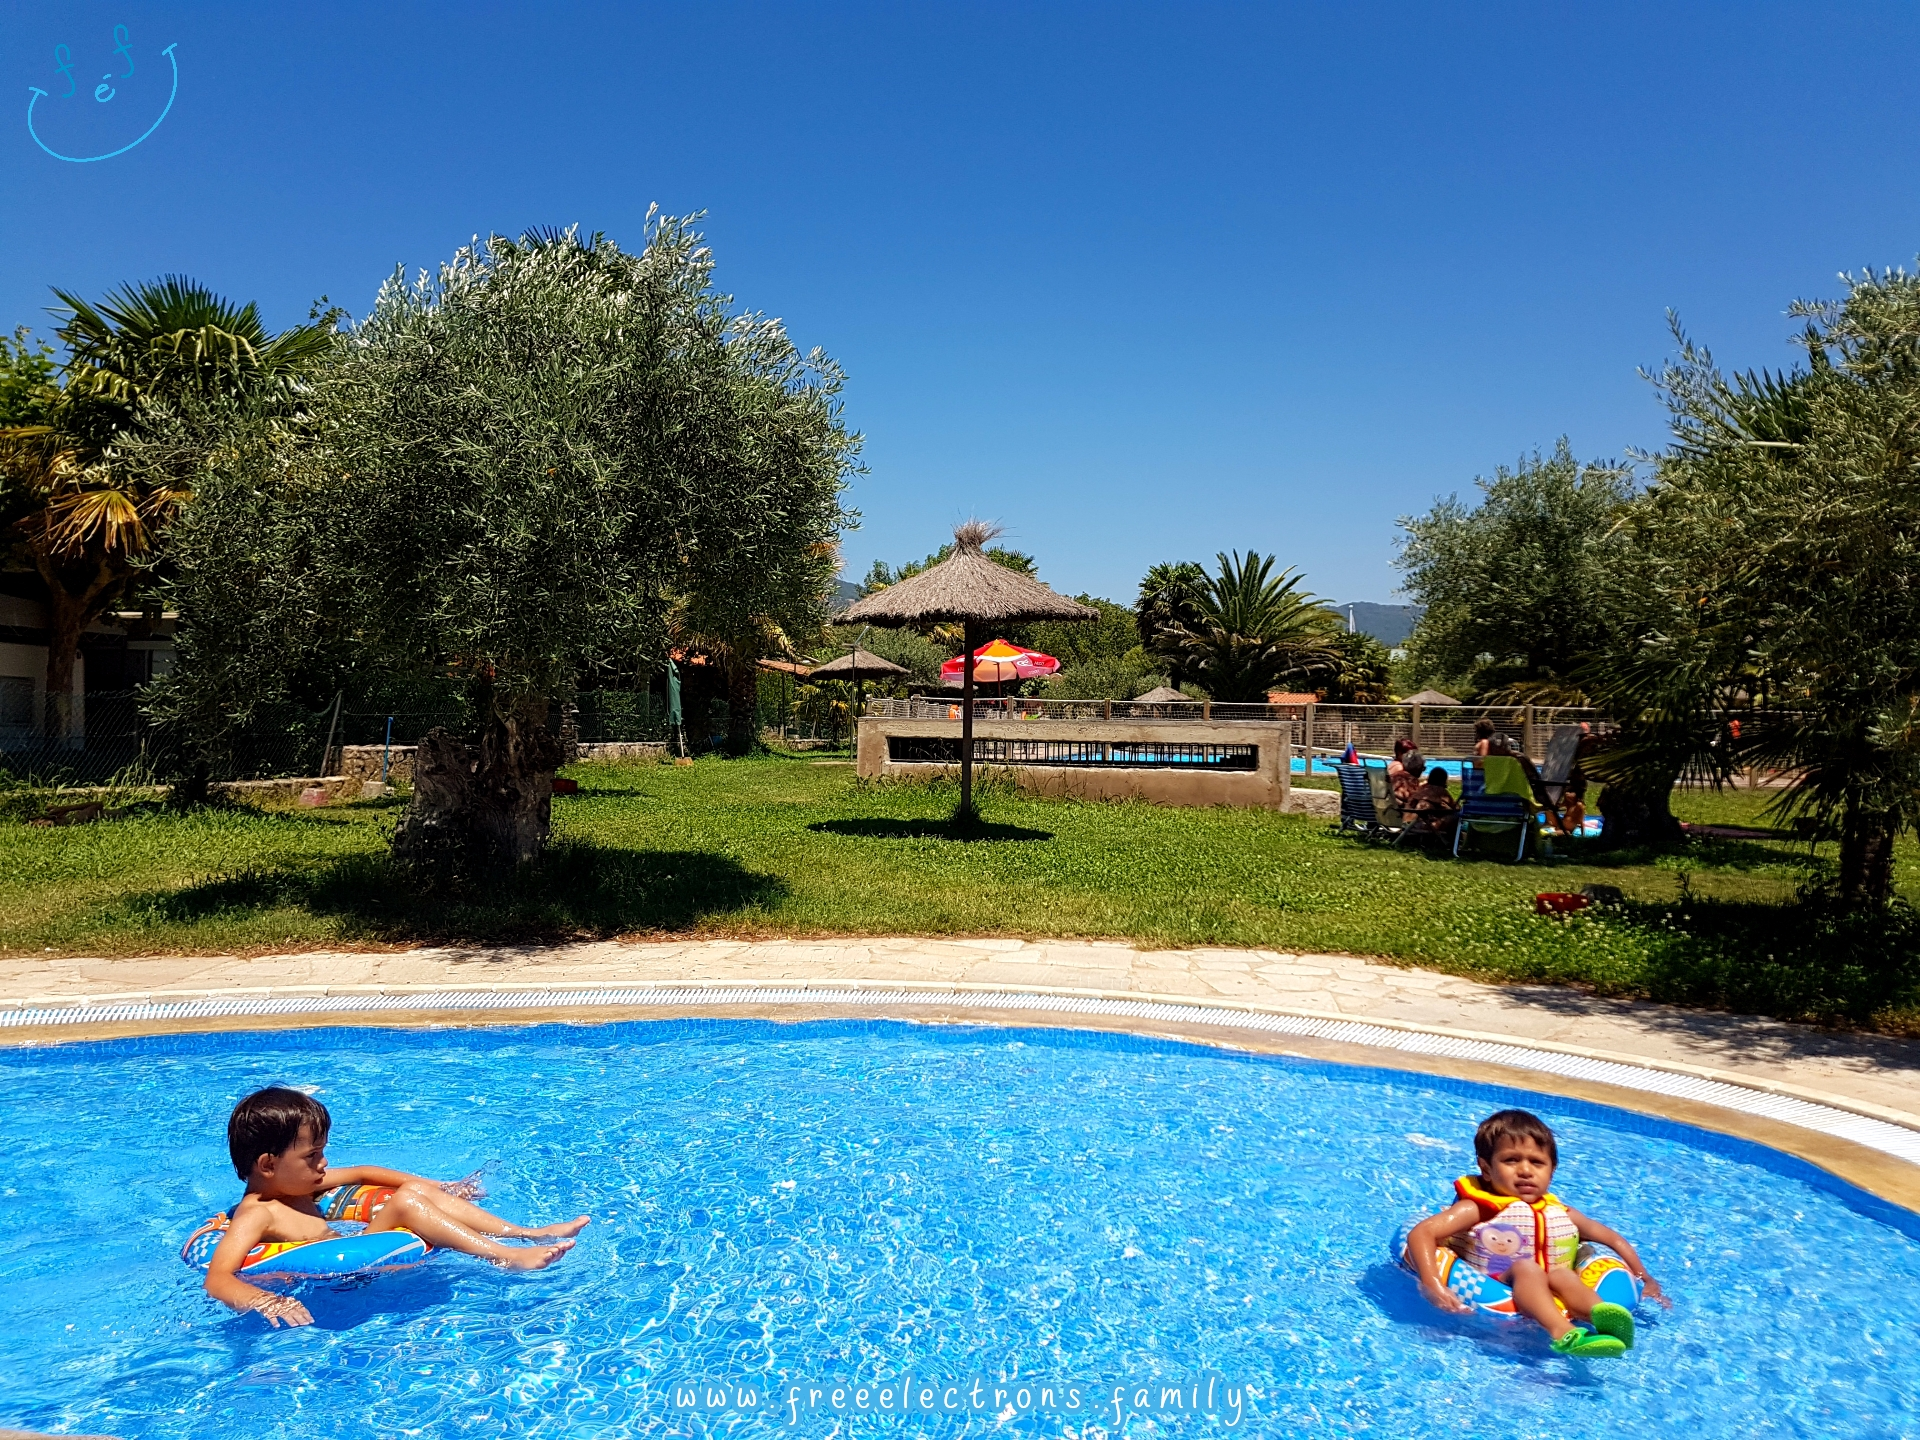 #FreeElectrons.Family - camping road trip Europe 2 swim pool